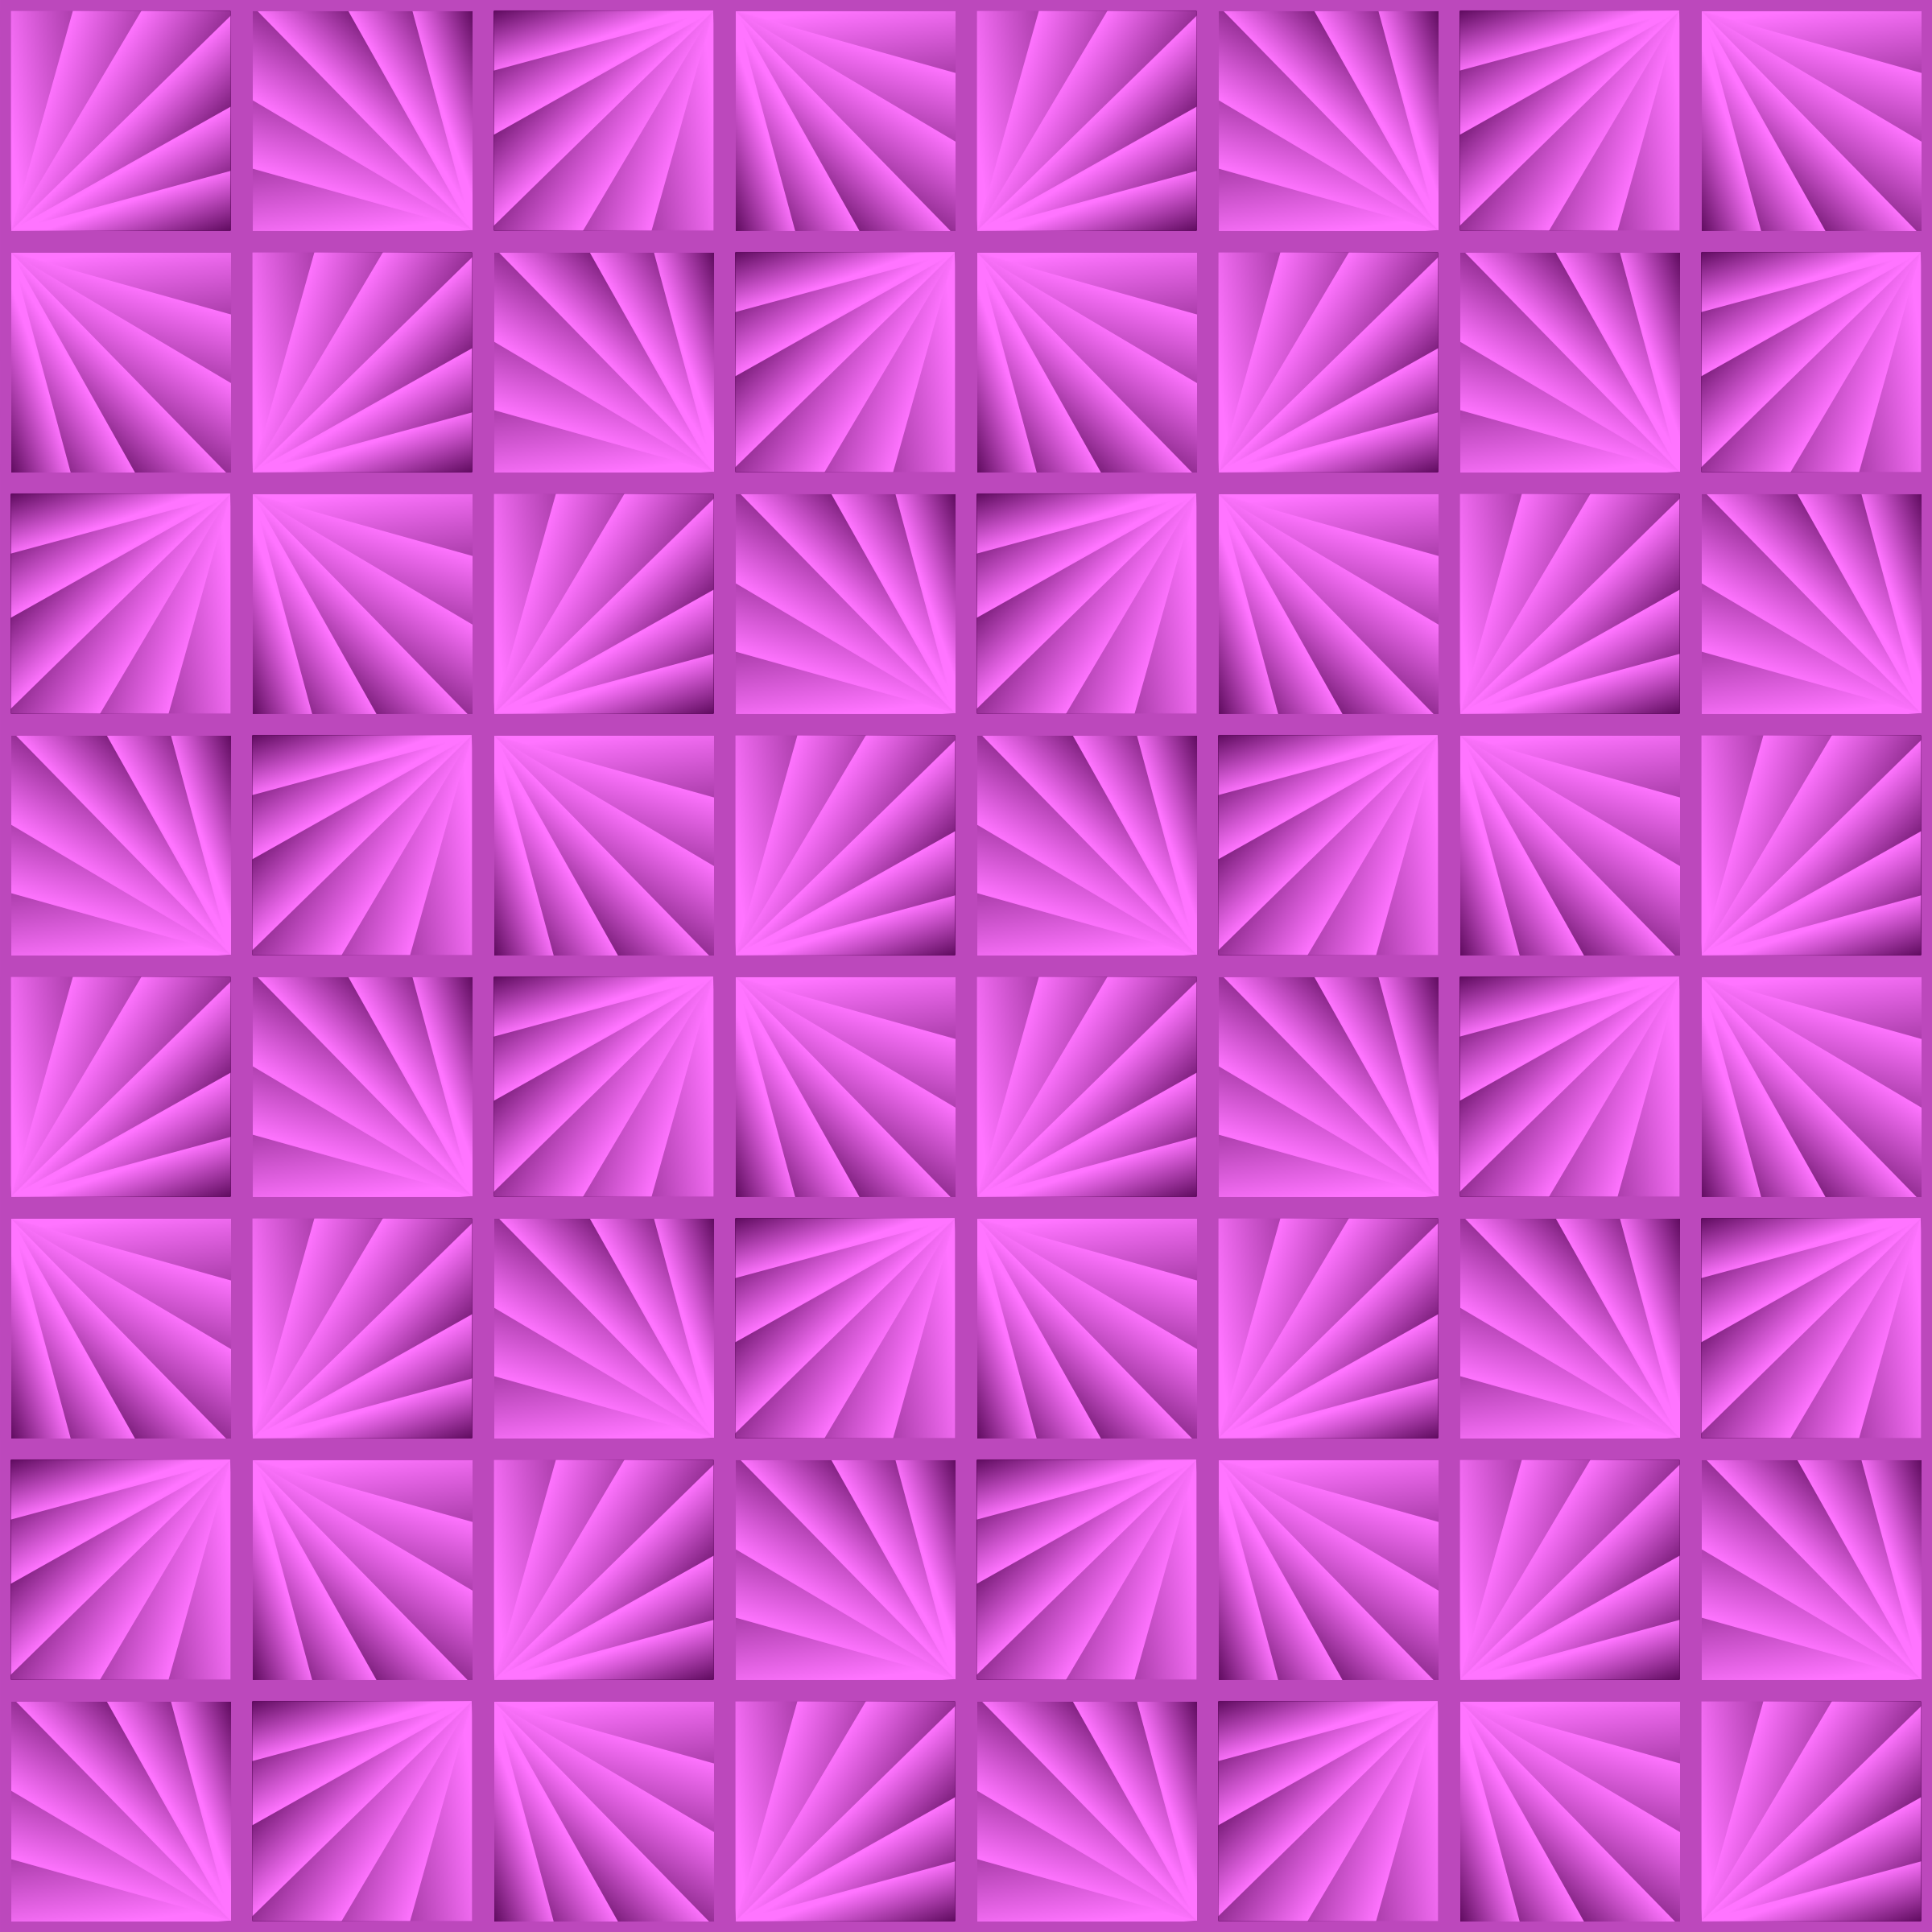 Background pattern 223 (colour 4) by Firkin